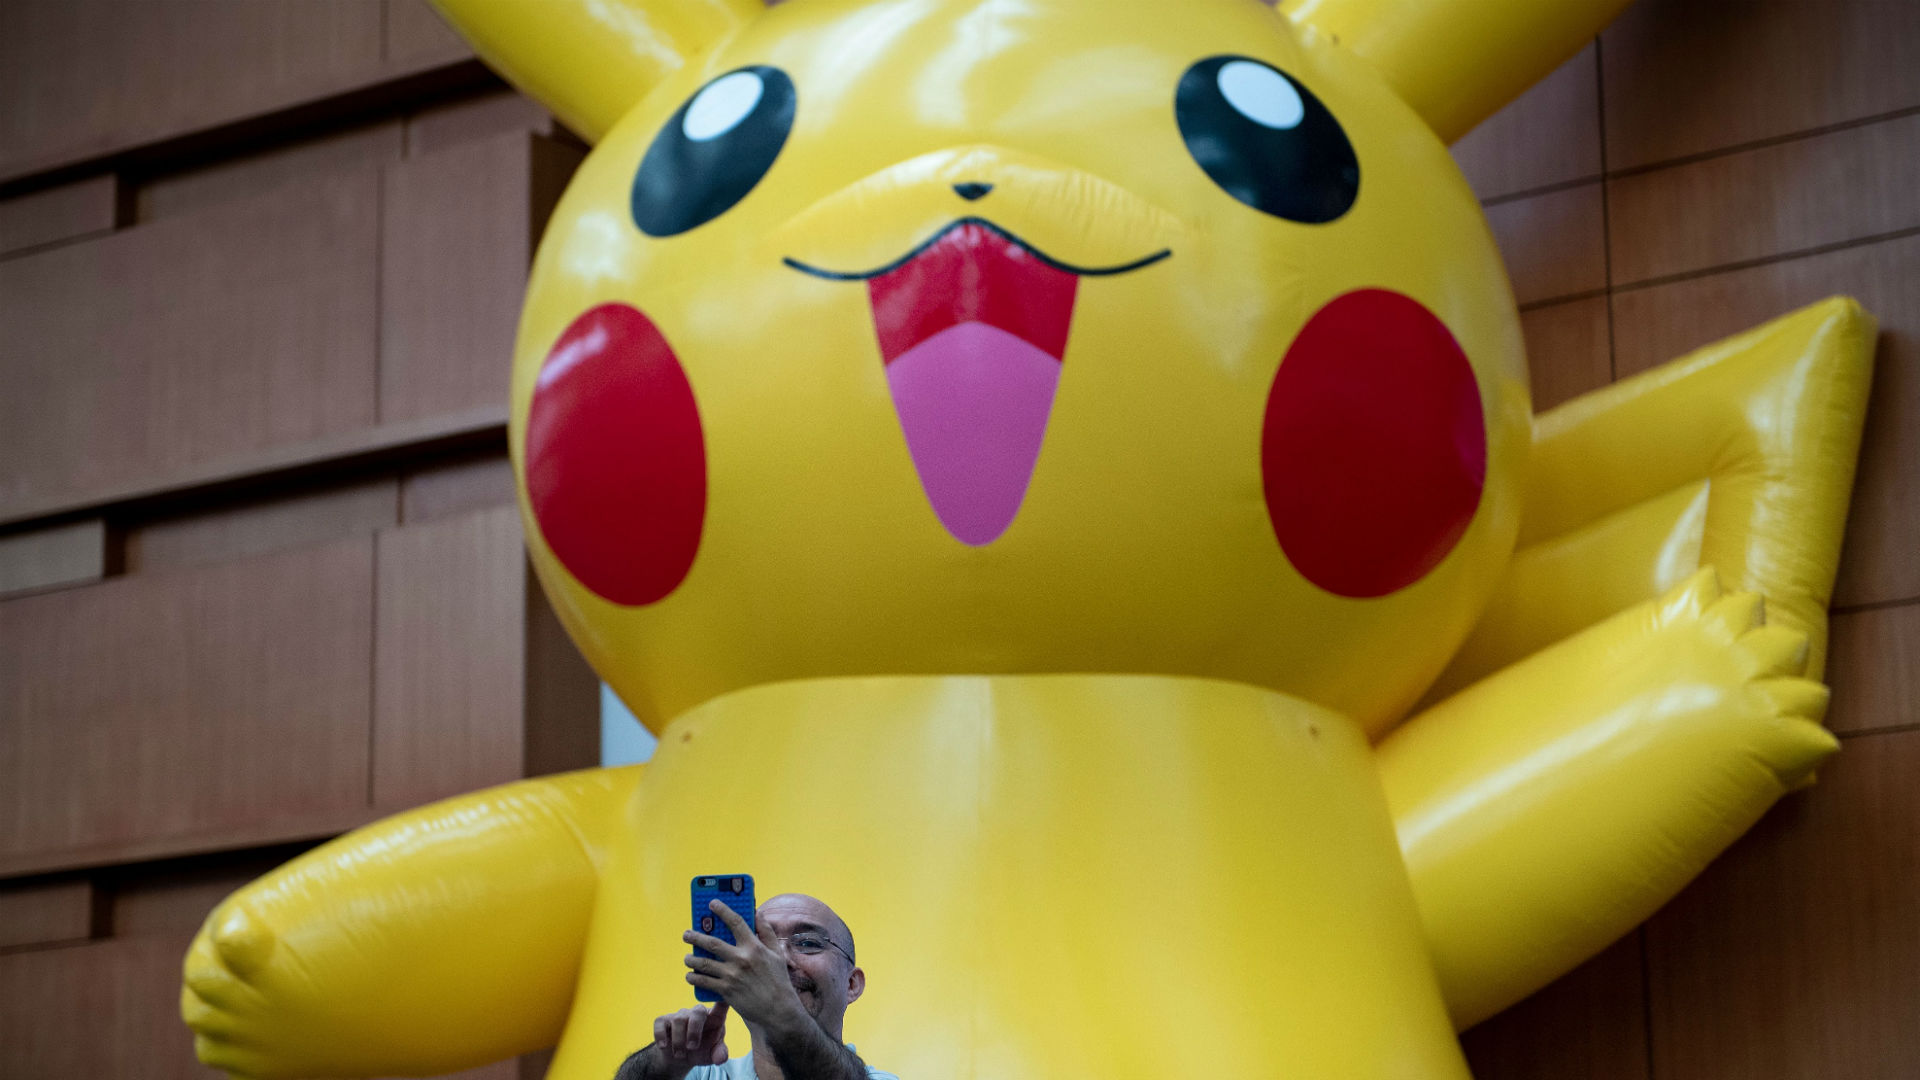 A new 'Pokemon Snap' game is coming to Nintendo Switch, and Twitter is freaking out about it 1